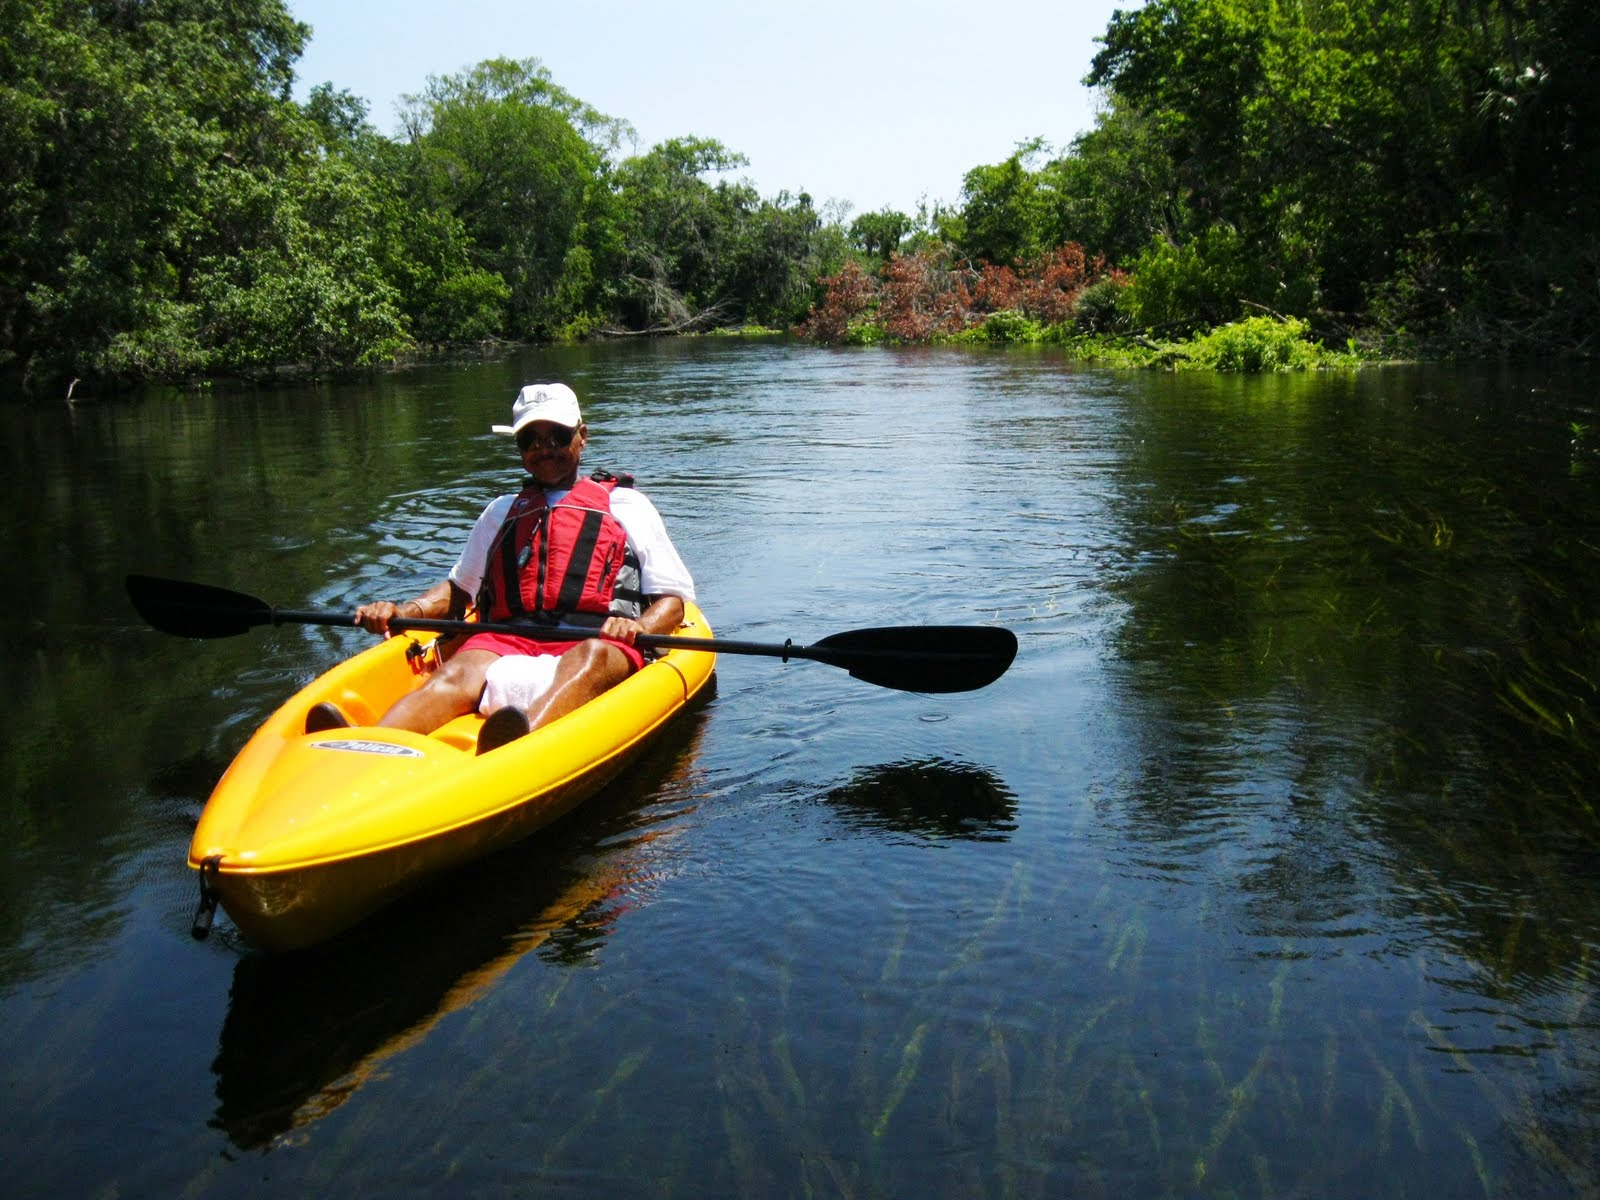 We Call It The River Of Gres And Wildlife You See While Kayaking In This Special Place Is Fantastic Steven Pillows Our Lead Guide Kenny Boyd